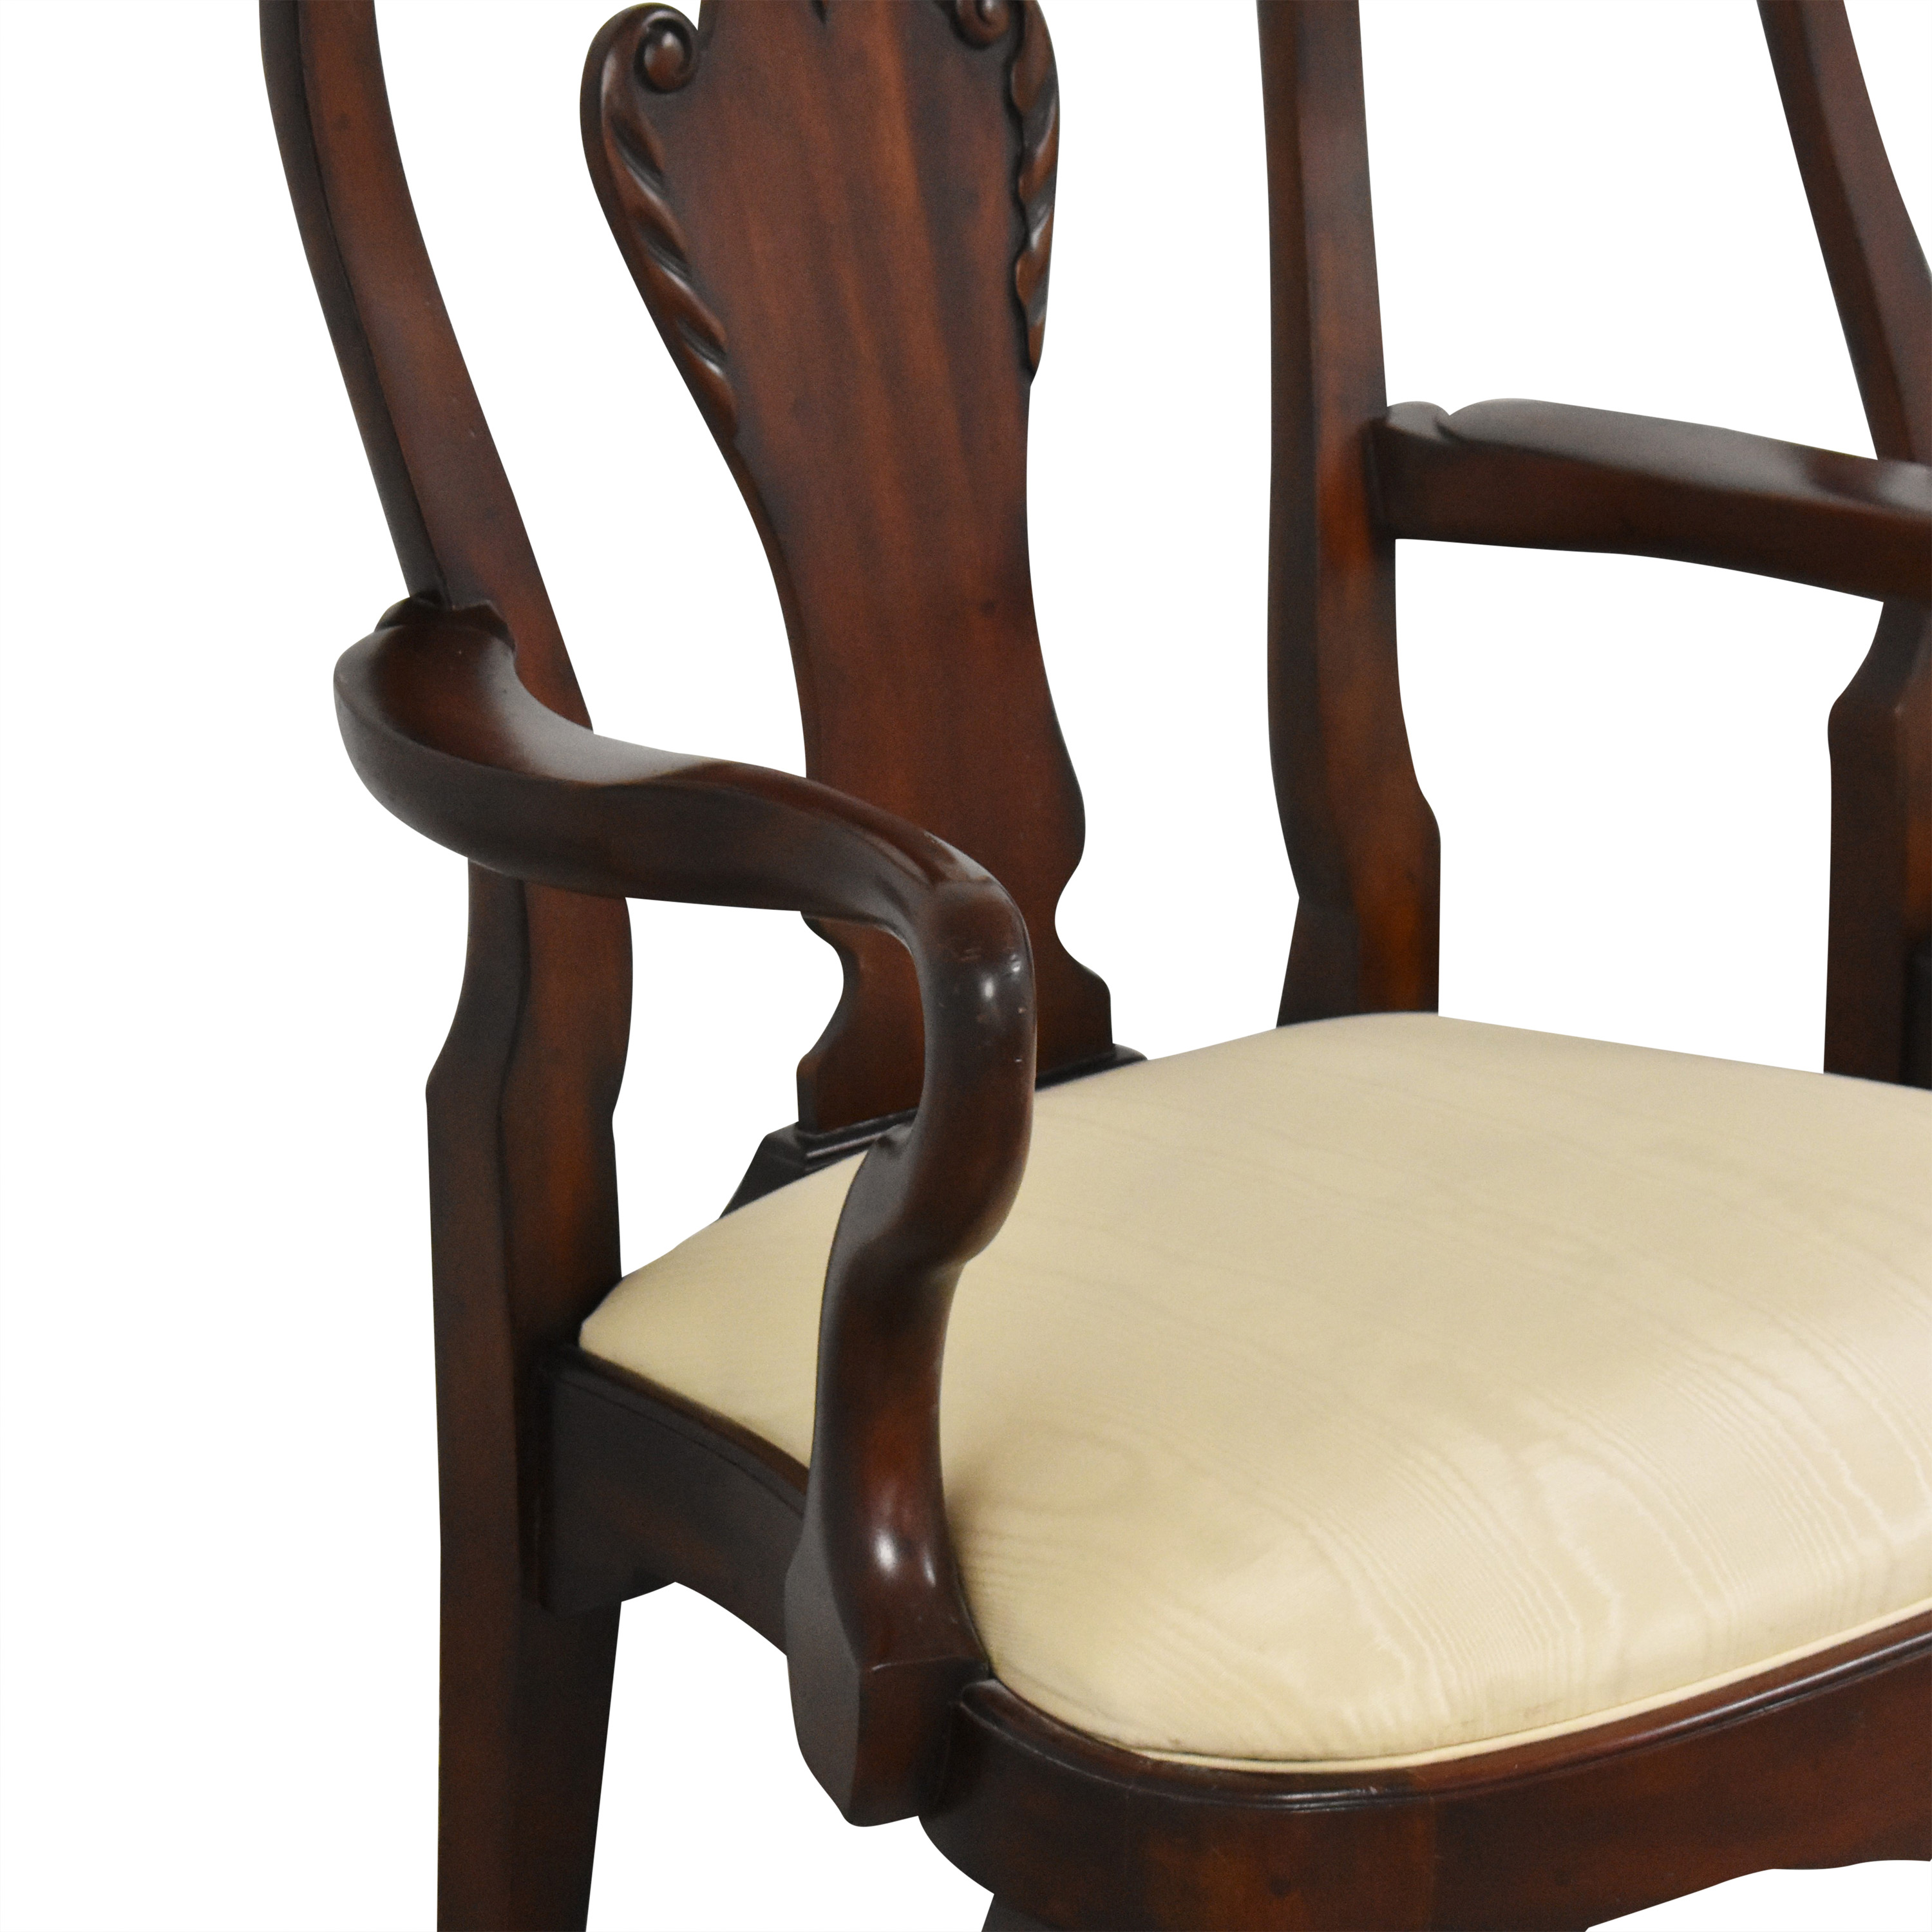 Maitland-Smith Maitland-Smith Regency Dining Chairs for sale